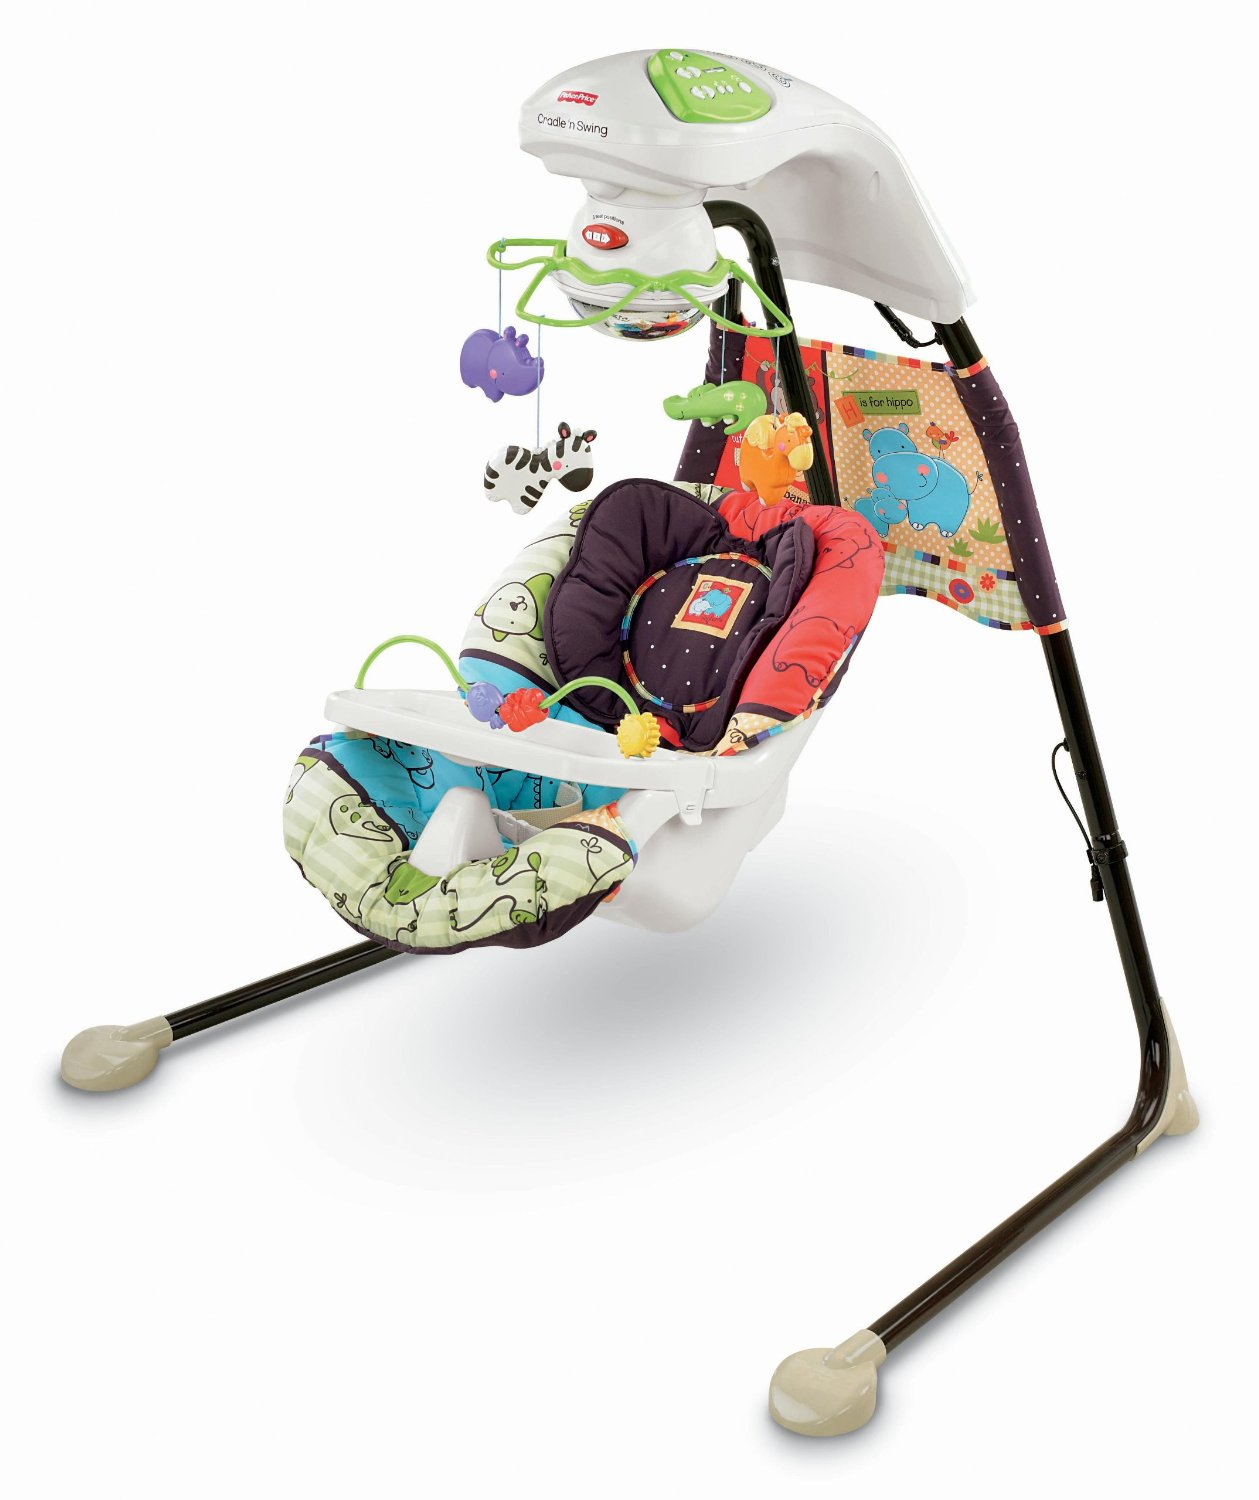 Fisher-Price Cradle